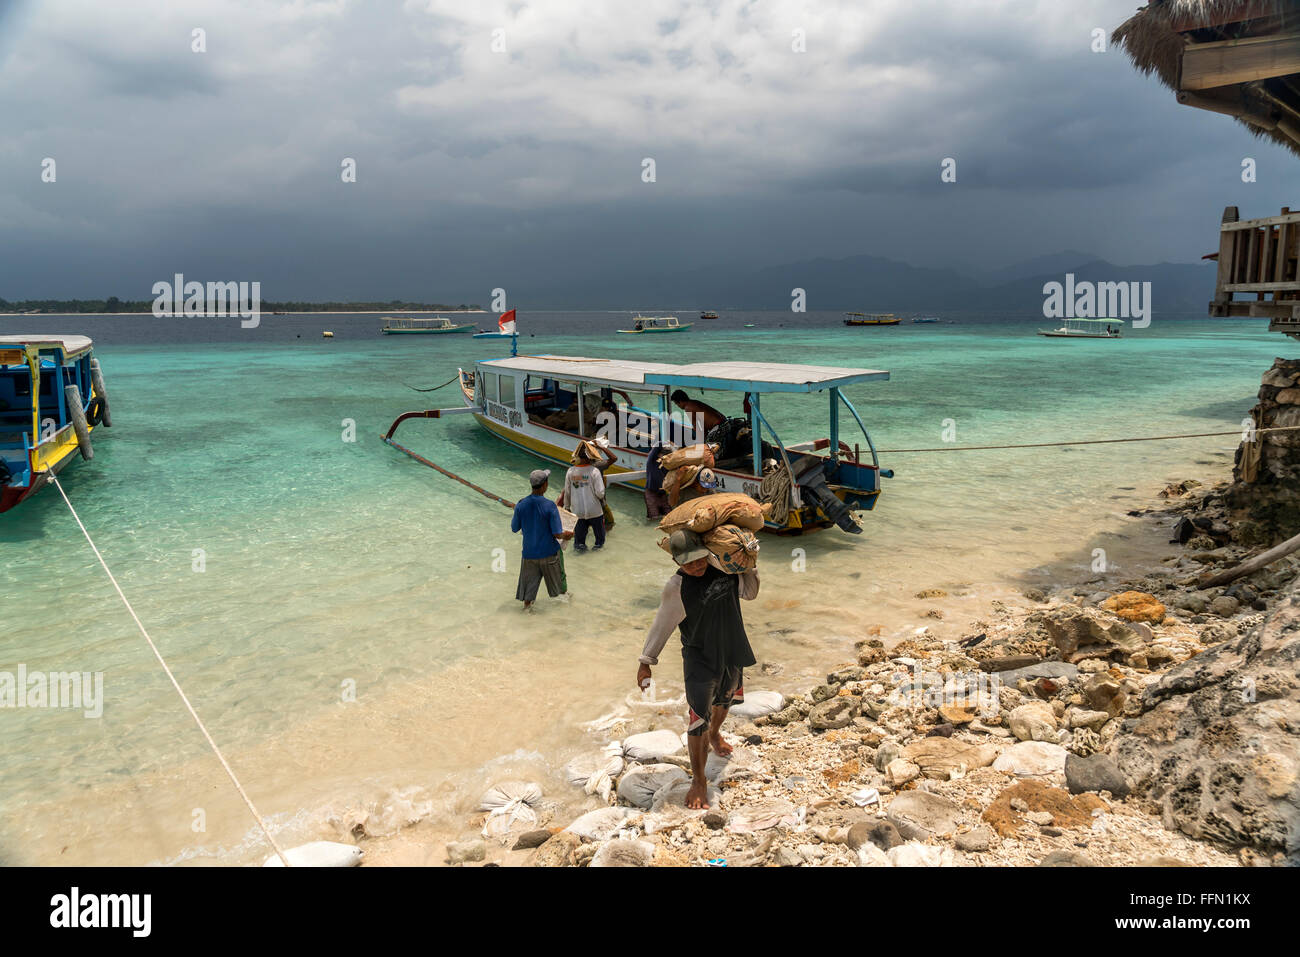 worker carrying construction materials to the small island Gili Meno, Lombok, Indonesia, Asia - Stock Image